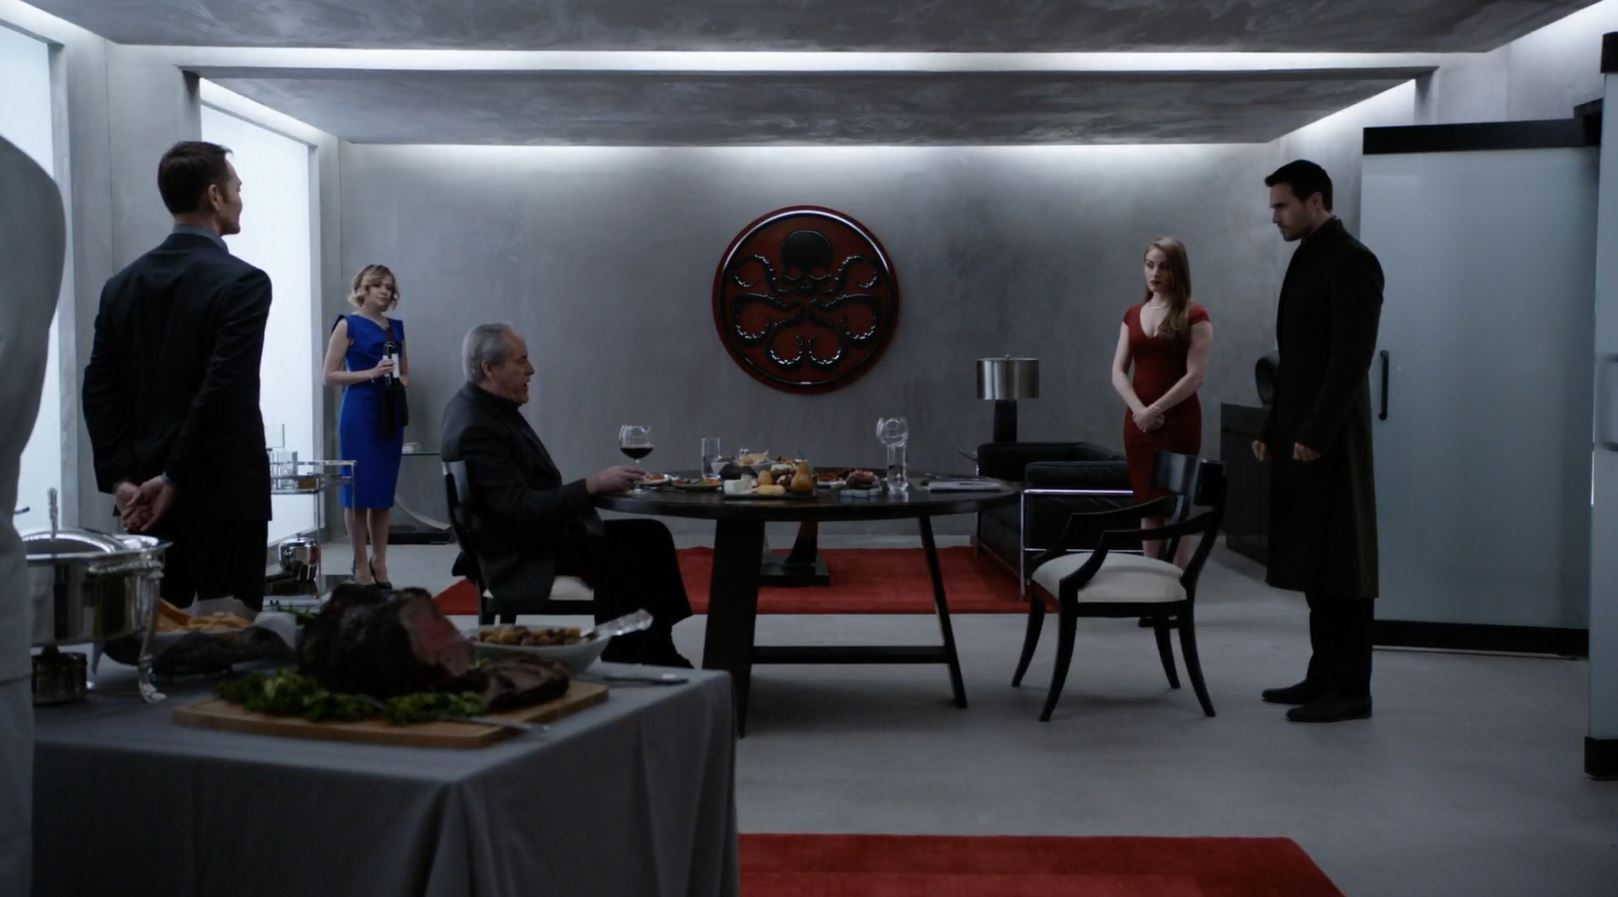 Hive confronts Malick. Agents of SHIELD S3Ep15 Spacetime review